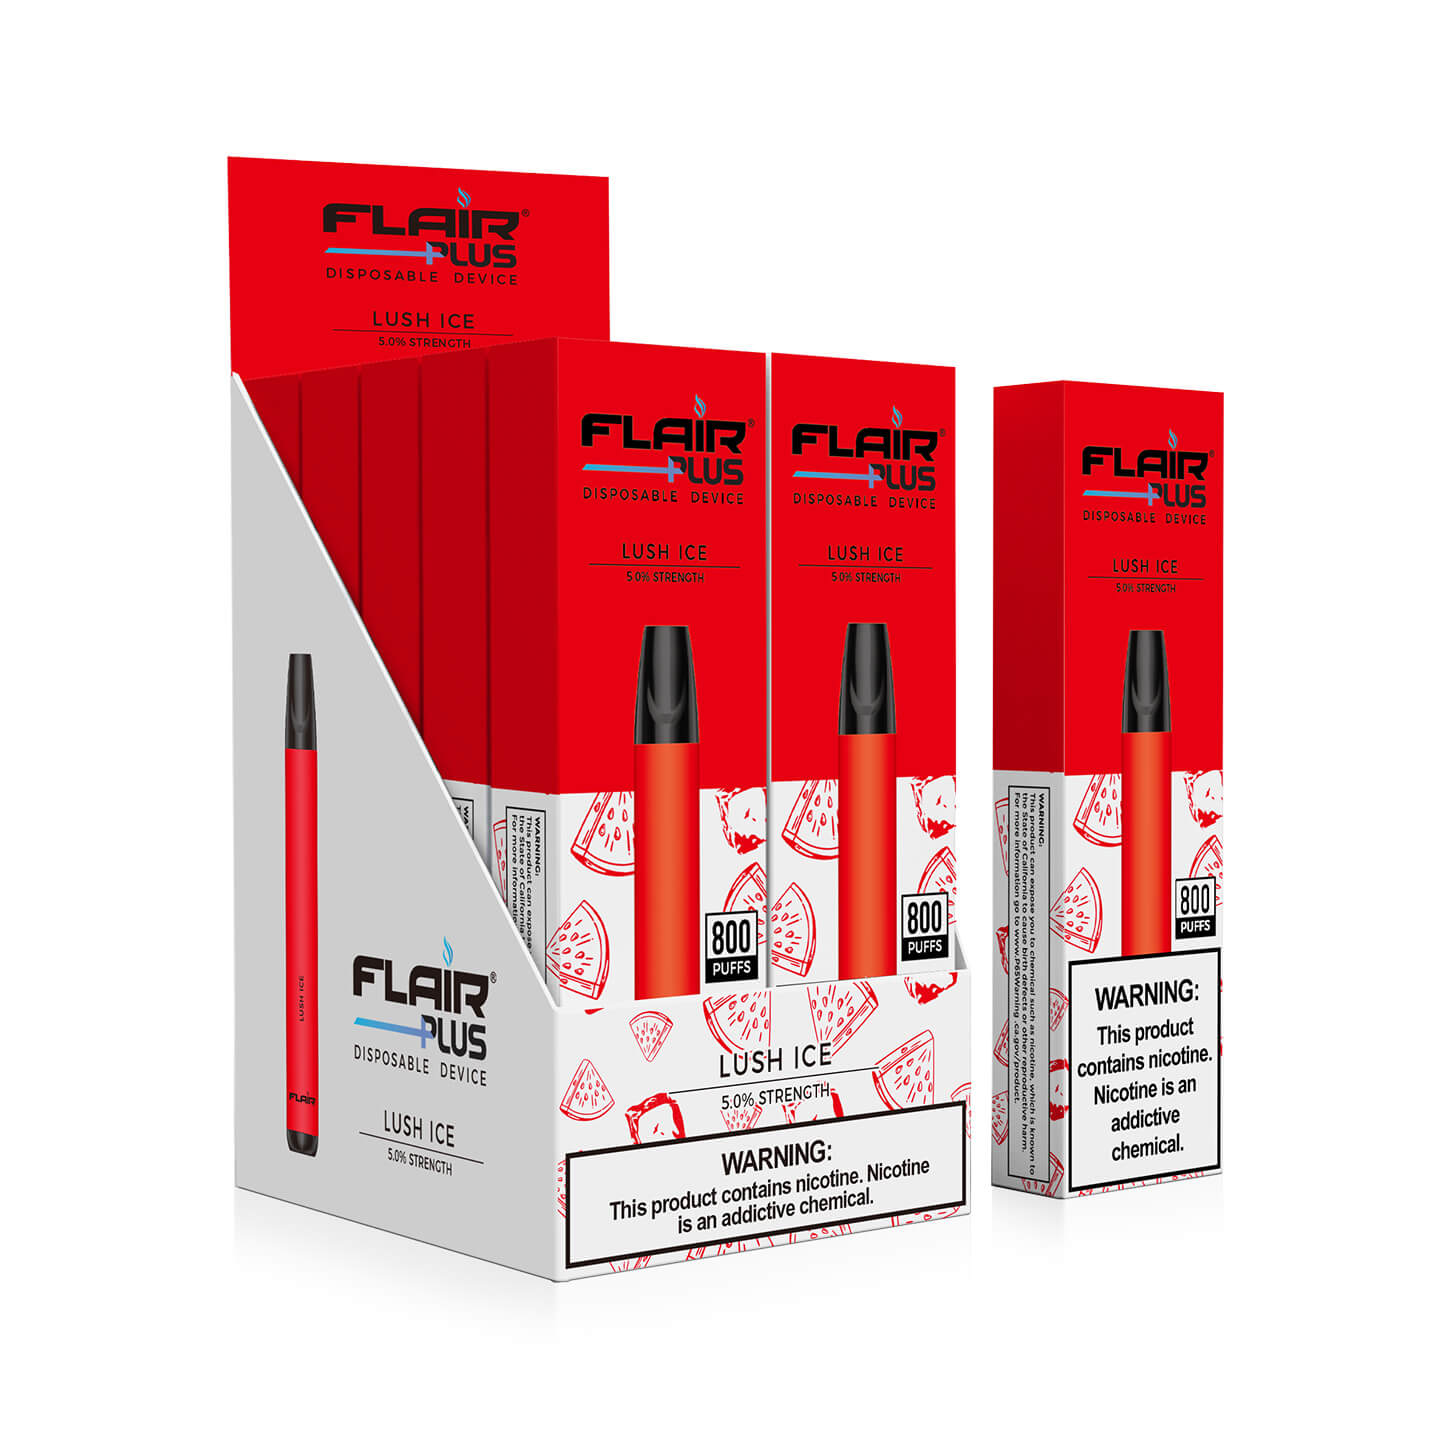 Box image of Flair Plus Disposable Devices (Lush Ice - 800 Puffs)